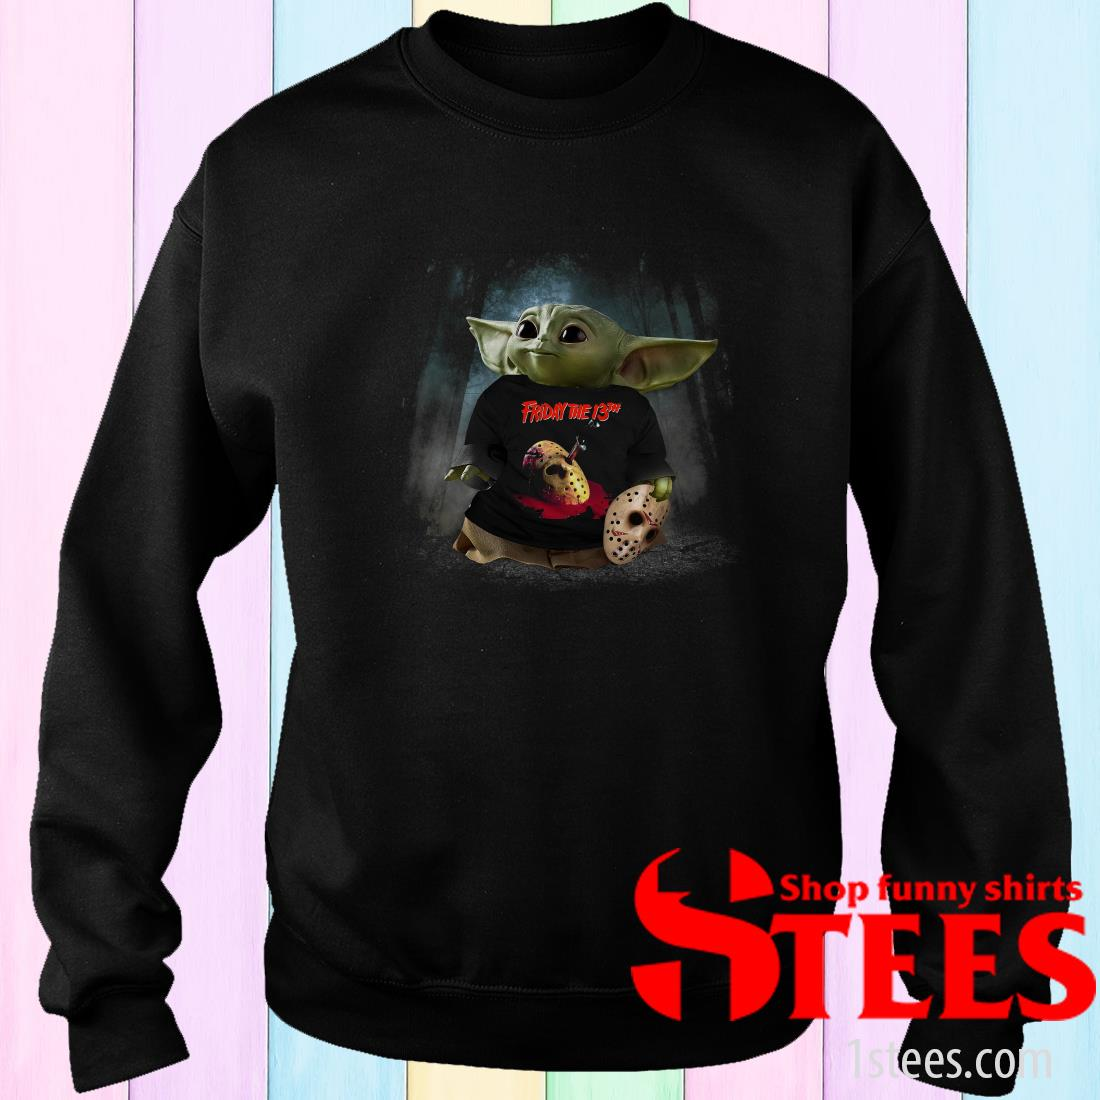 Star Wars Baby Yoda Friday The 13Th Sweatshirt